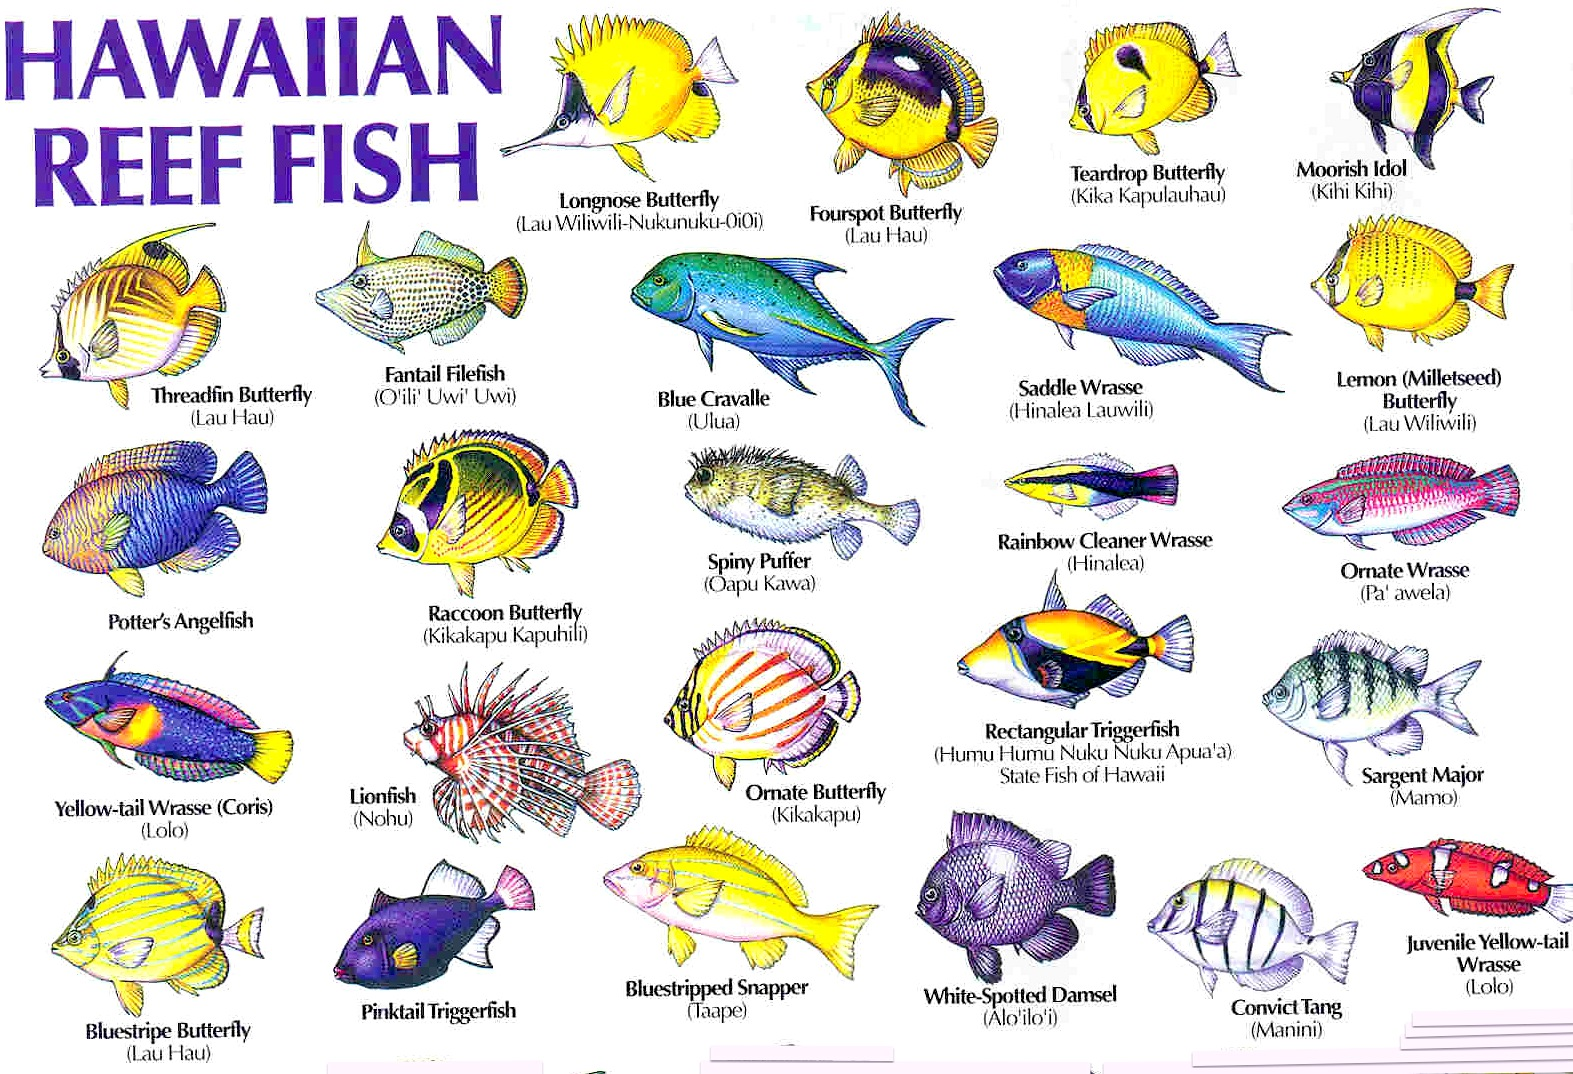 Visual Guide to Hawaii's Reef Fish